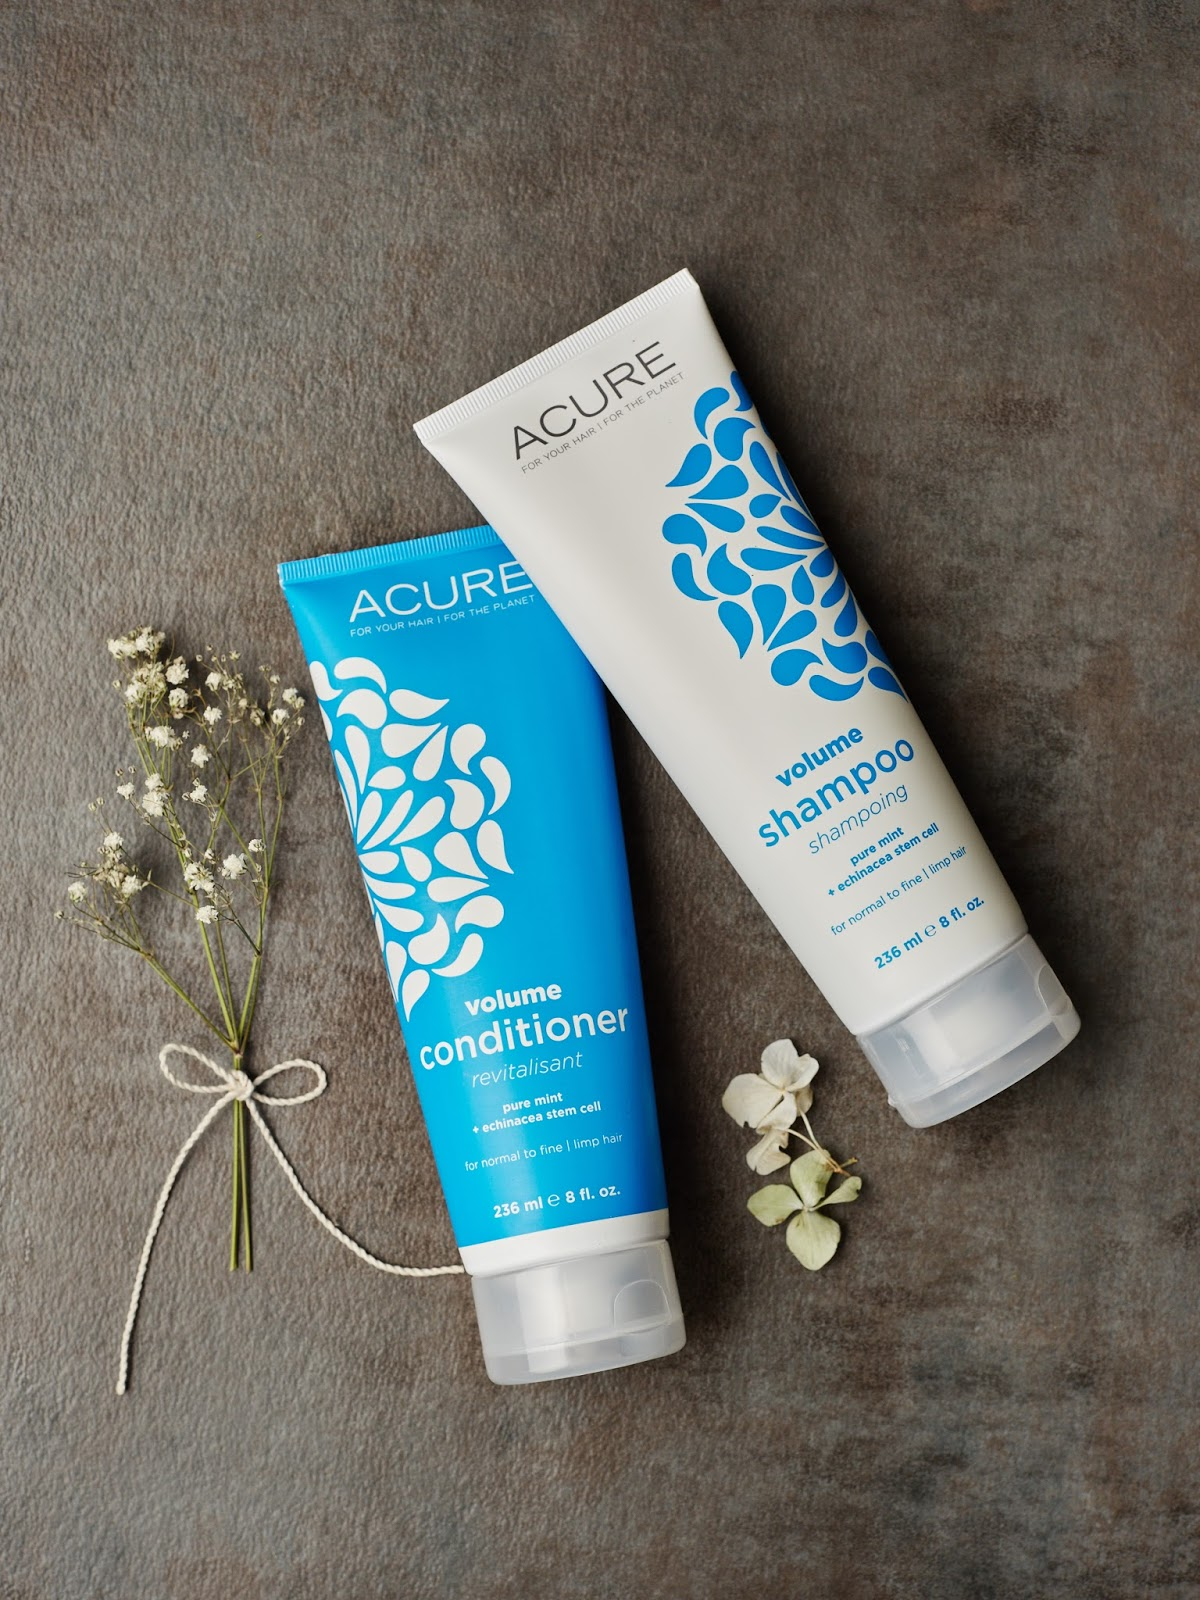 acure organics volume shampoo and conditioner review